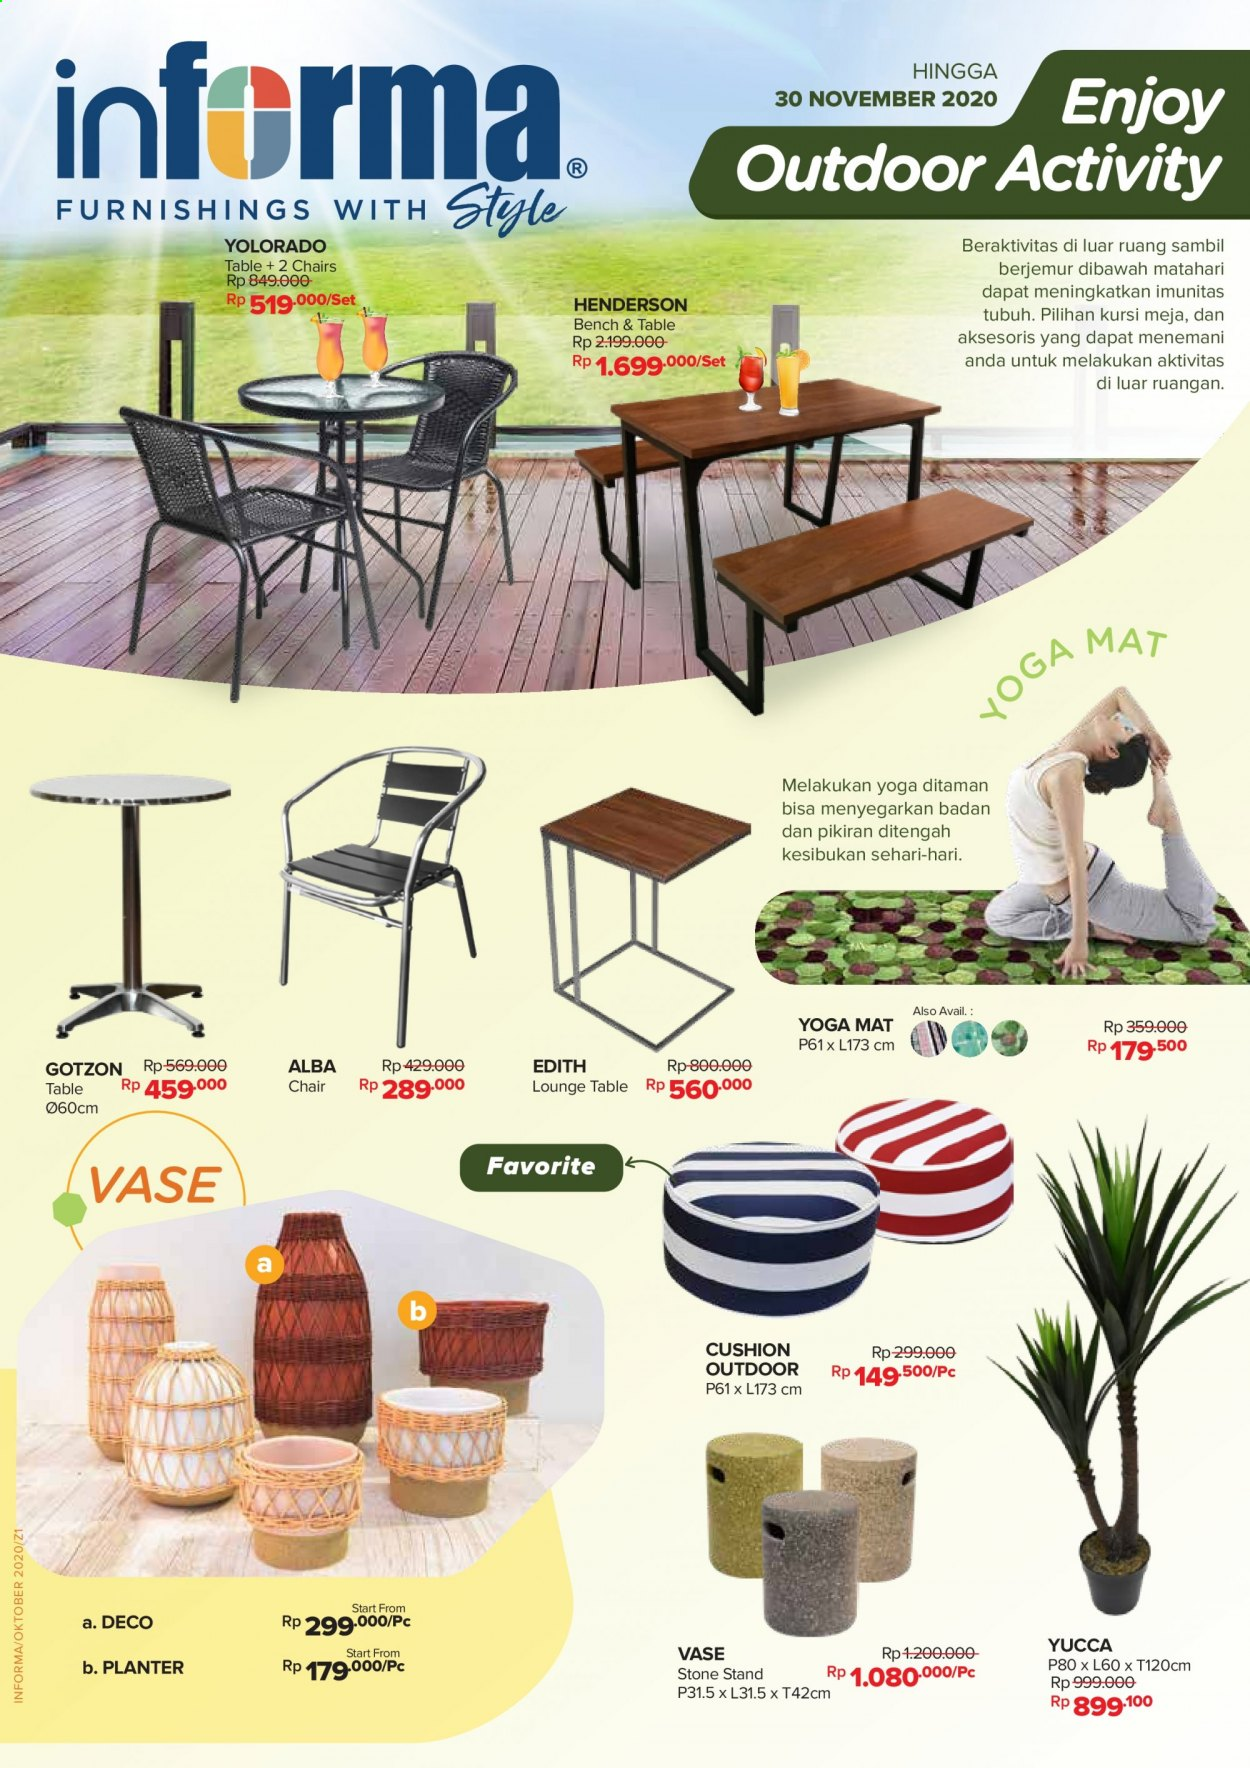 Promo Informa - 11/11/2020 - 11/30/2020 - Produk diskon - yoga mat, table, stand, mat, outdoor, kursi, chair, cushion, bench. Halaman 1.